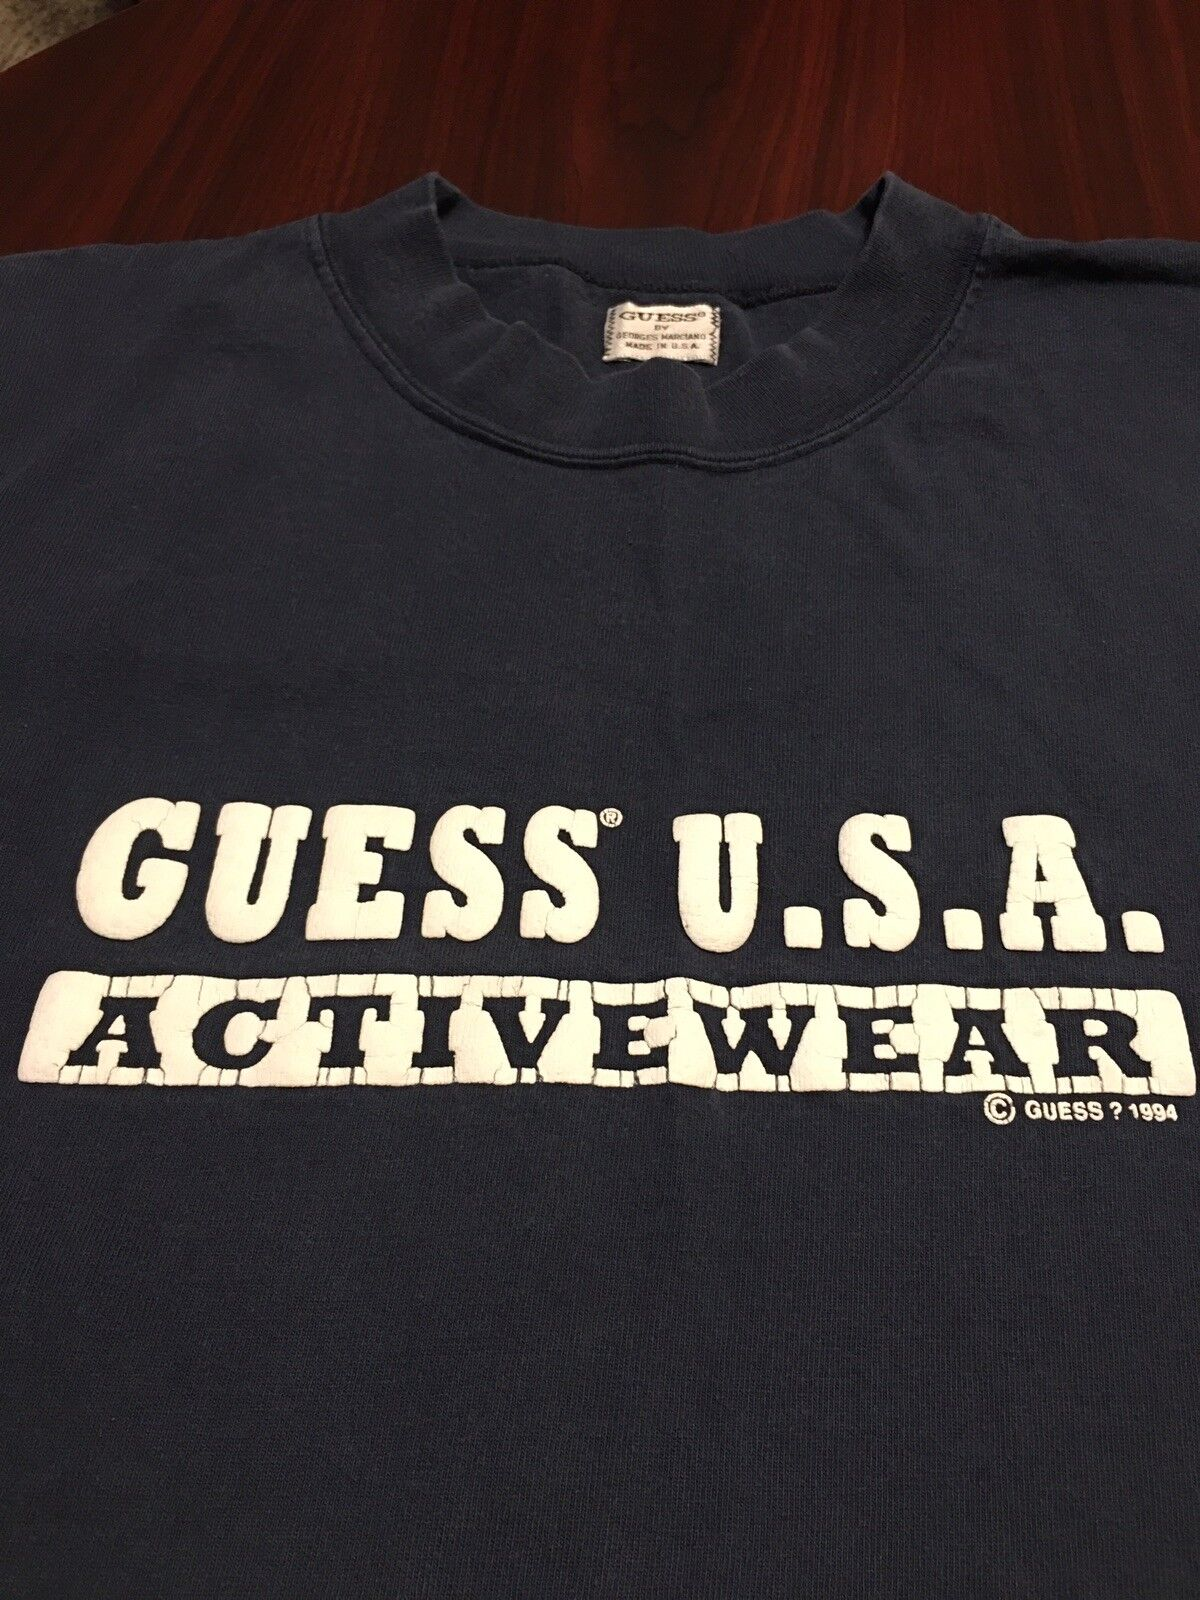 Vintage 90's GUESS USA Activewear 1994  Herren Spell Out T Shirt Extra Large XL